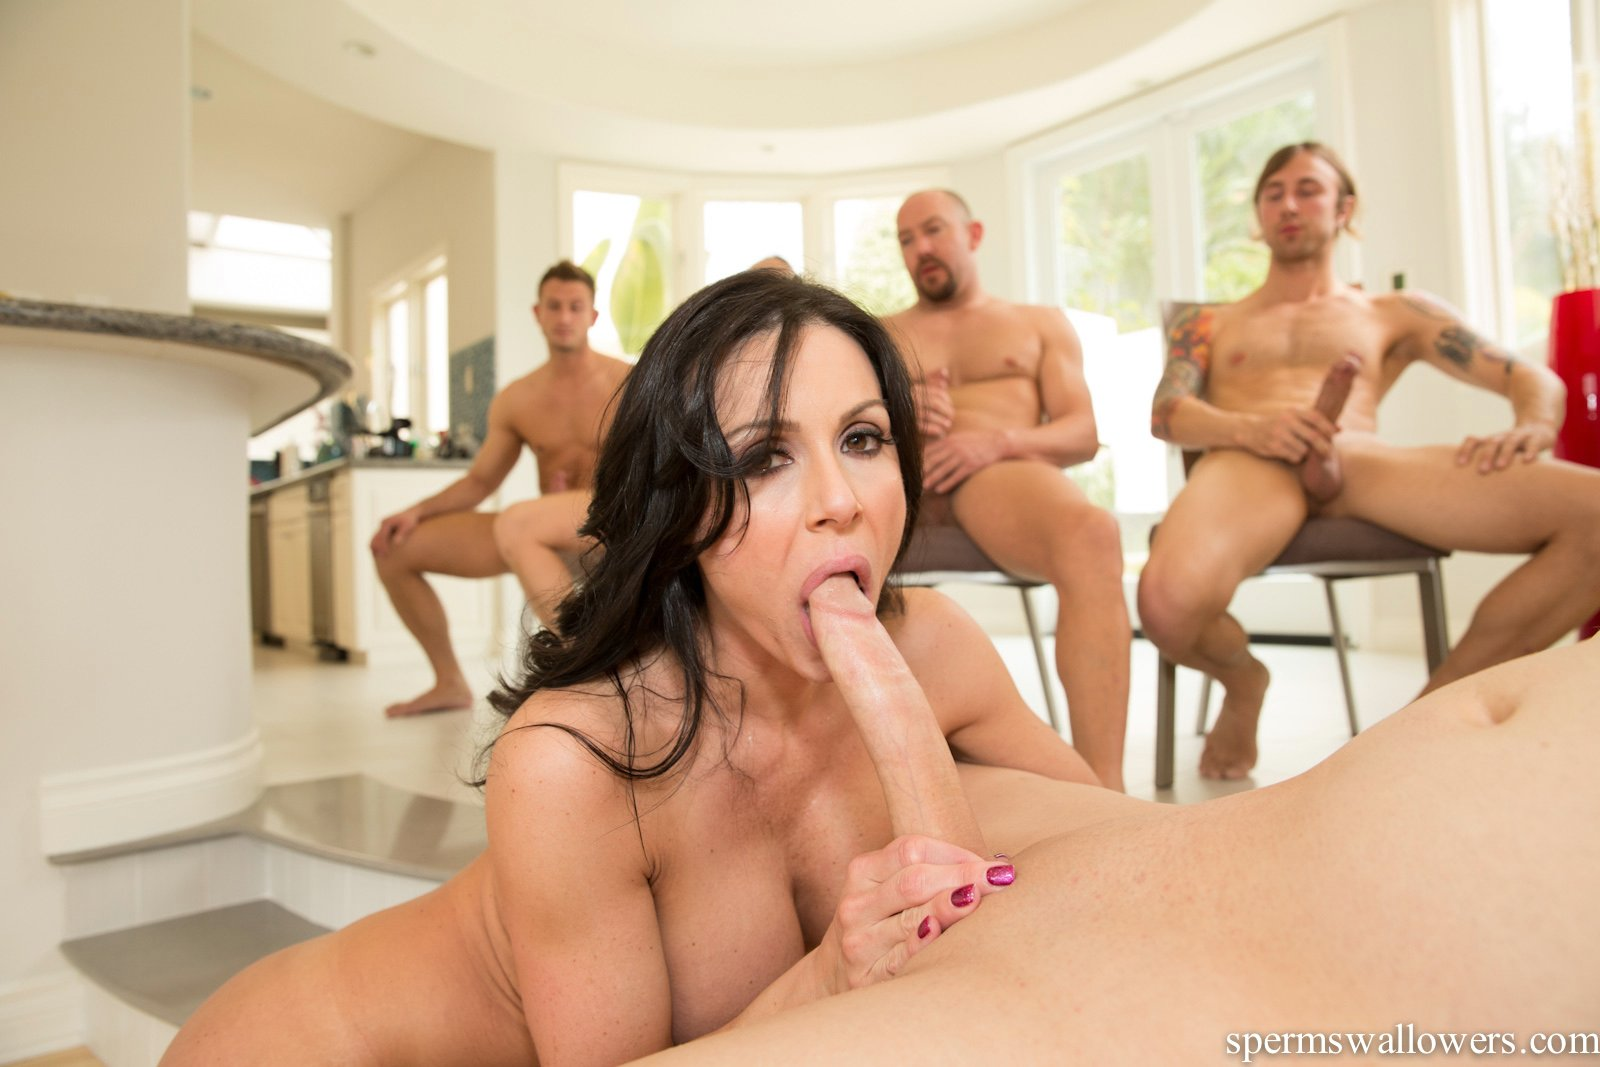 Kendra lust gang bang